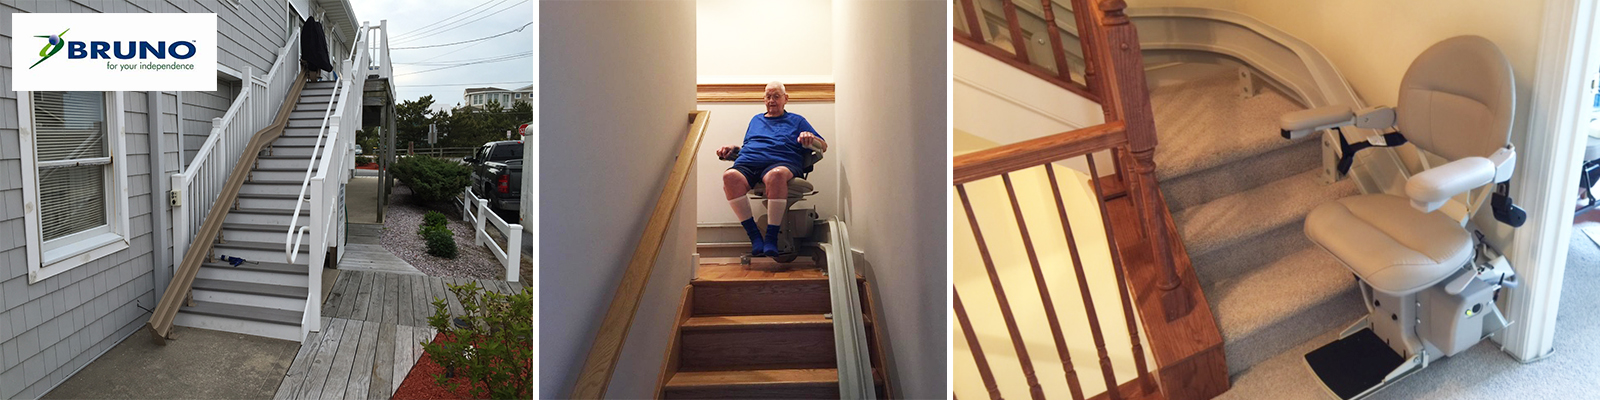 Bruno Stairlifts Indoor and Outdoor